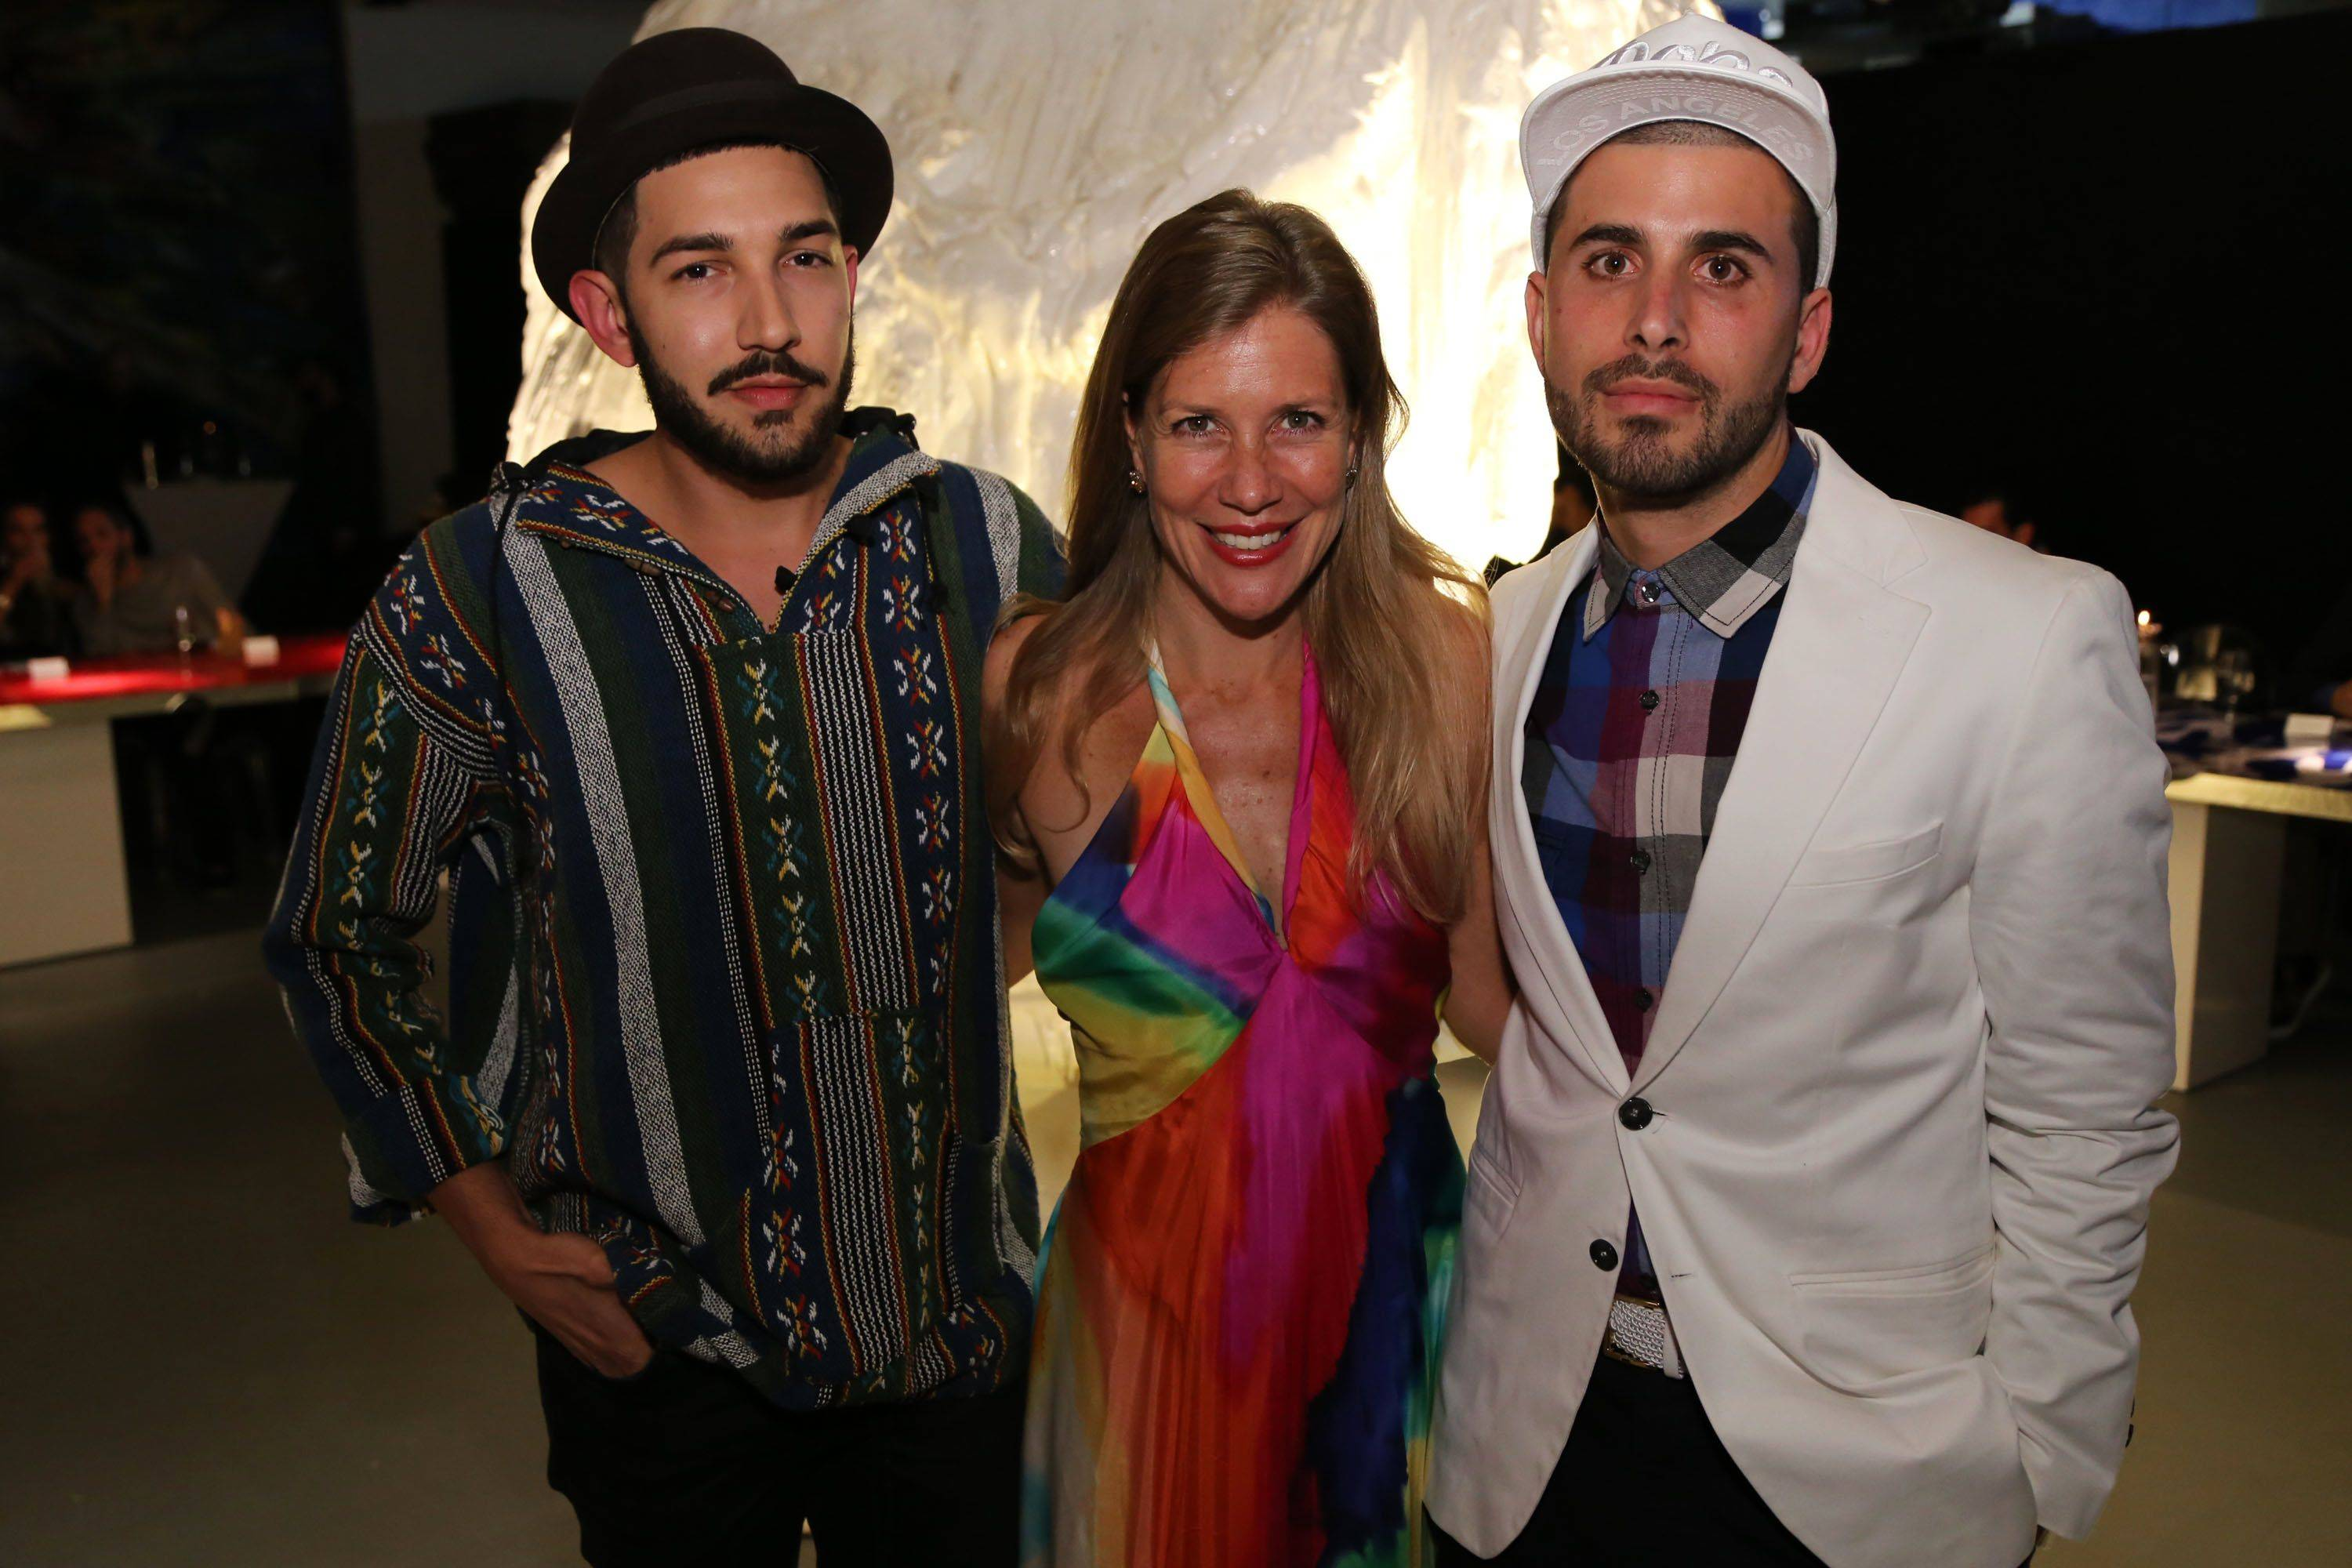 Anthony Spinello, Kathryn Mikesell, & Typoe1